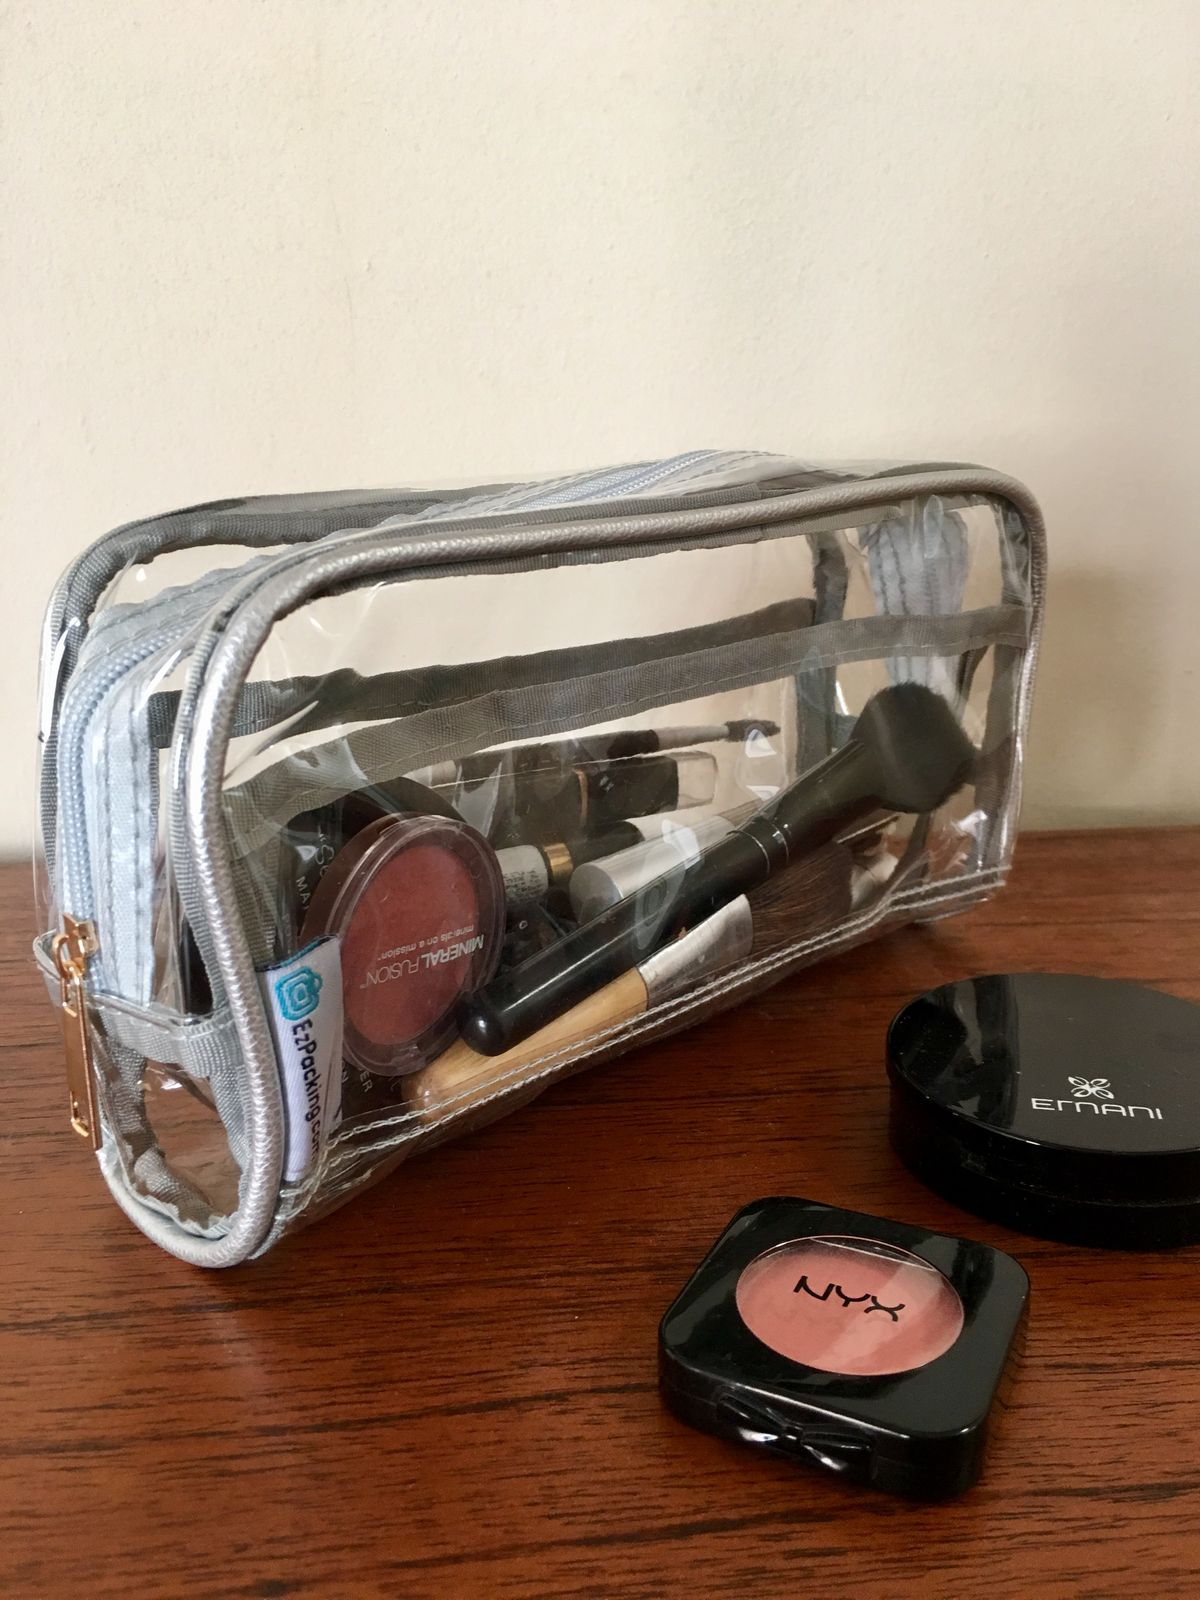 cosmetics in a clear makeup pouch